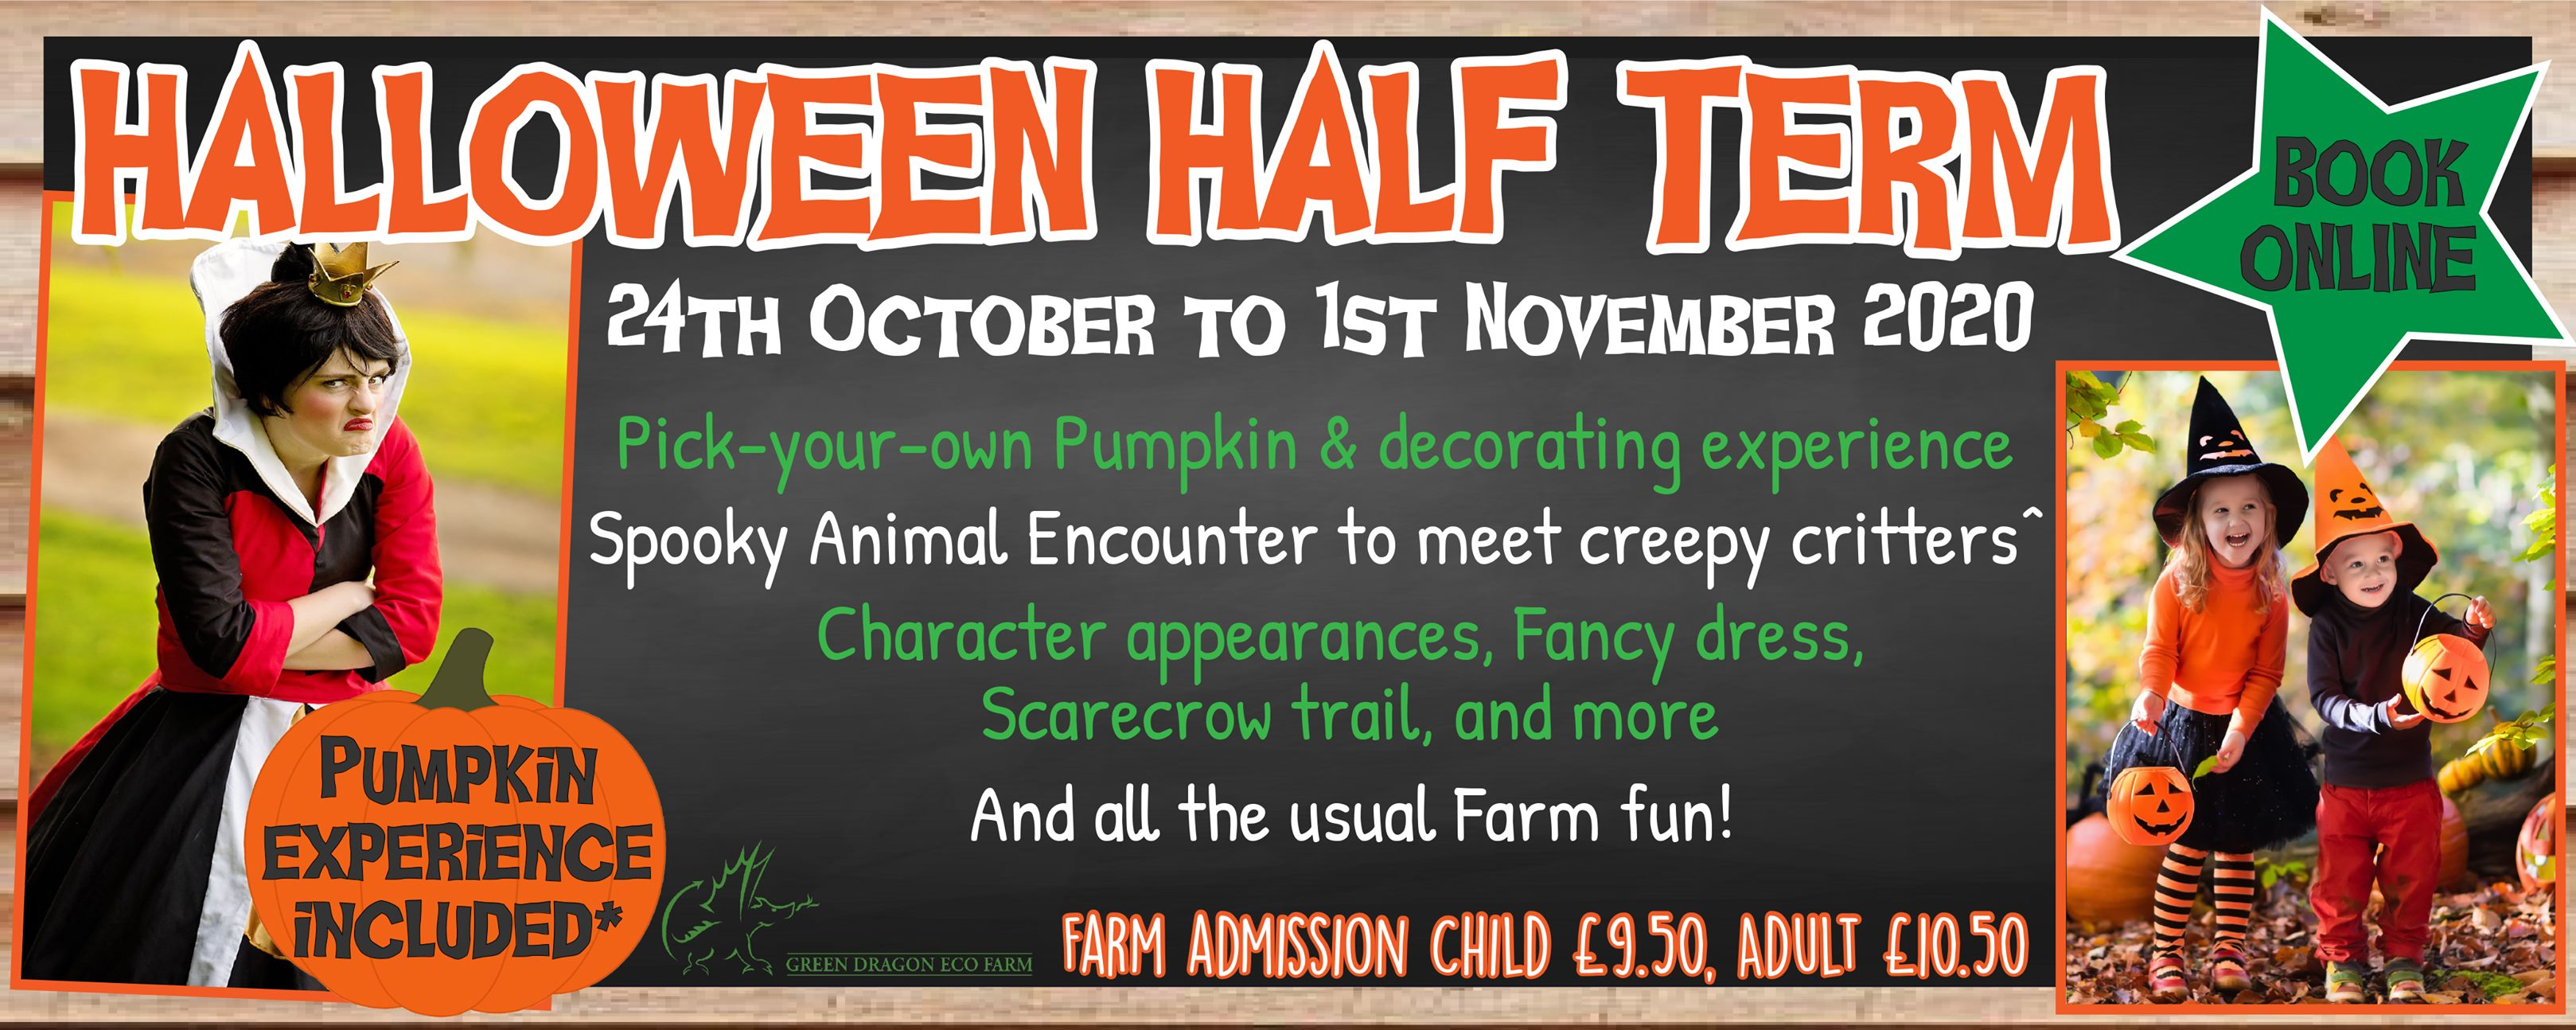 green dragon eco farm, october half term buckinghamshire, october half term events 2020